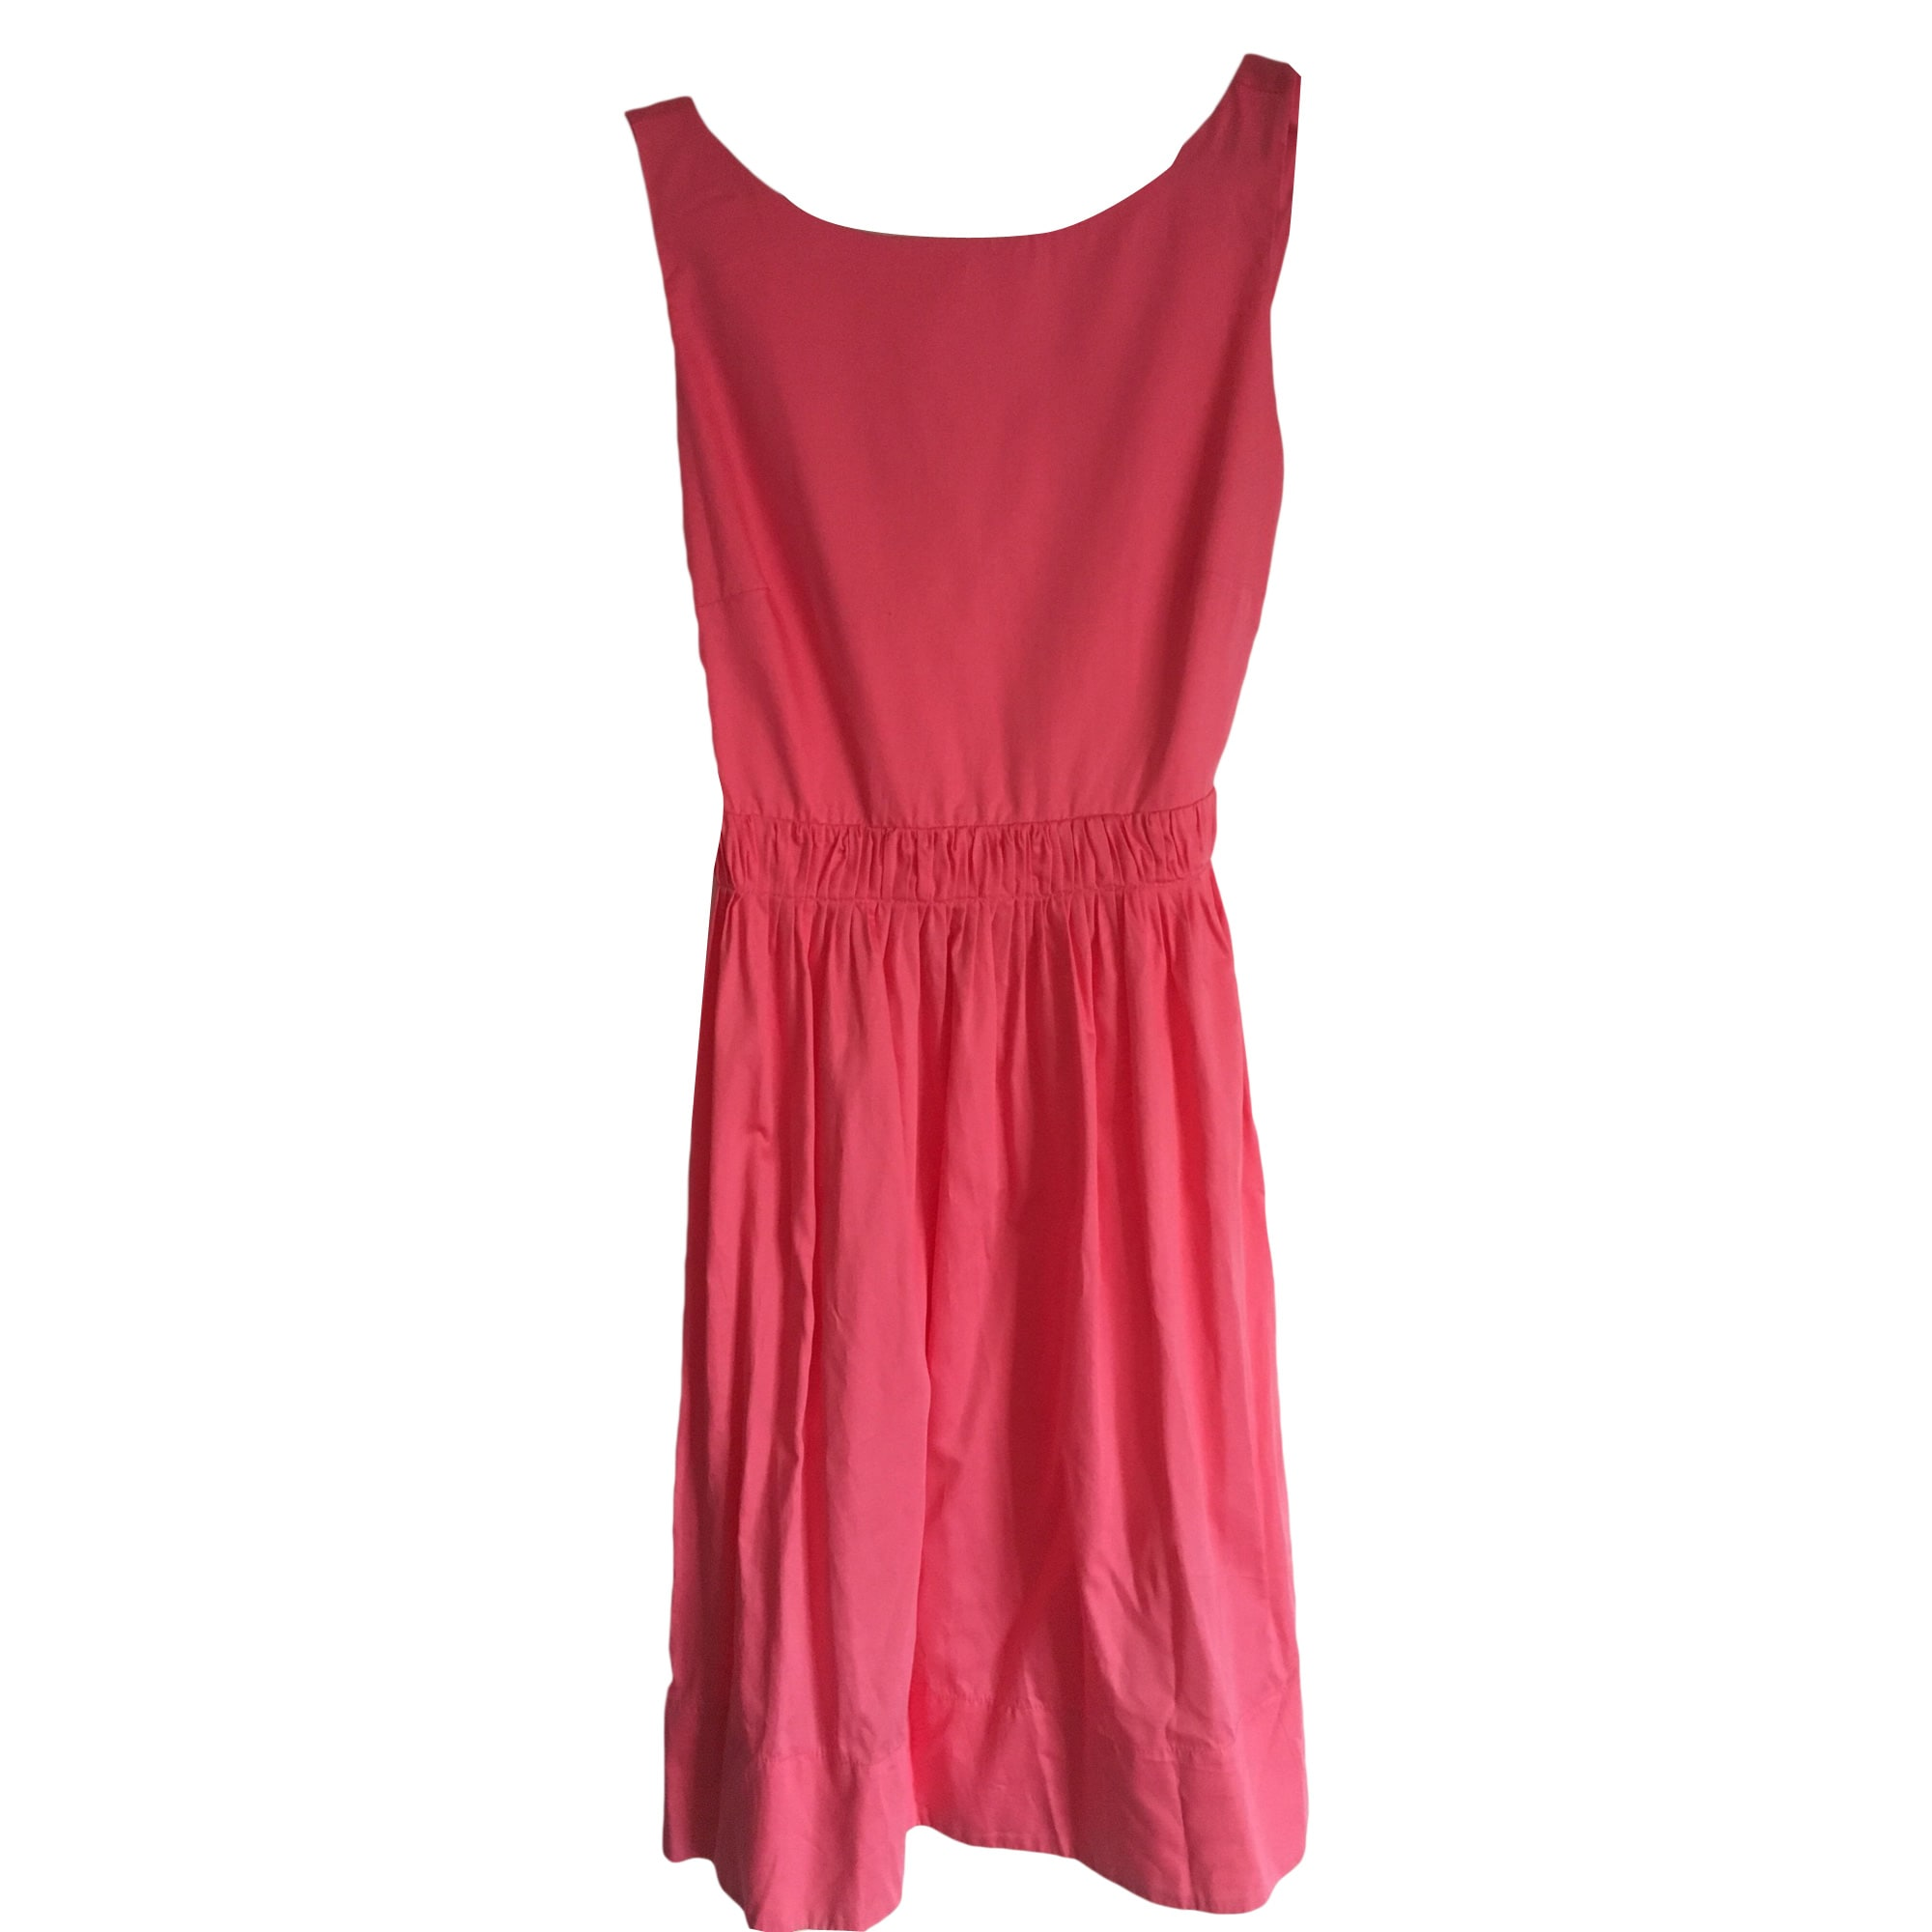 Midi Dress TARA JARMON Pink, fuchsia, light pink